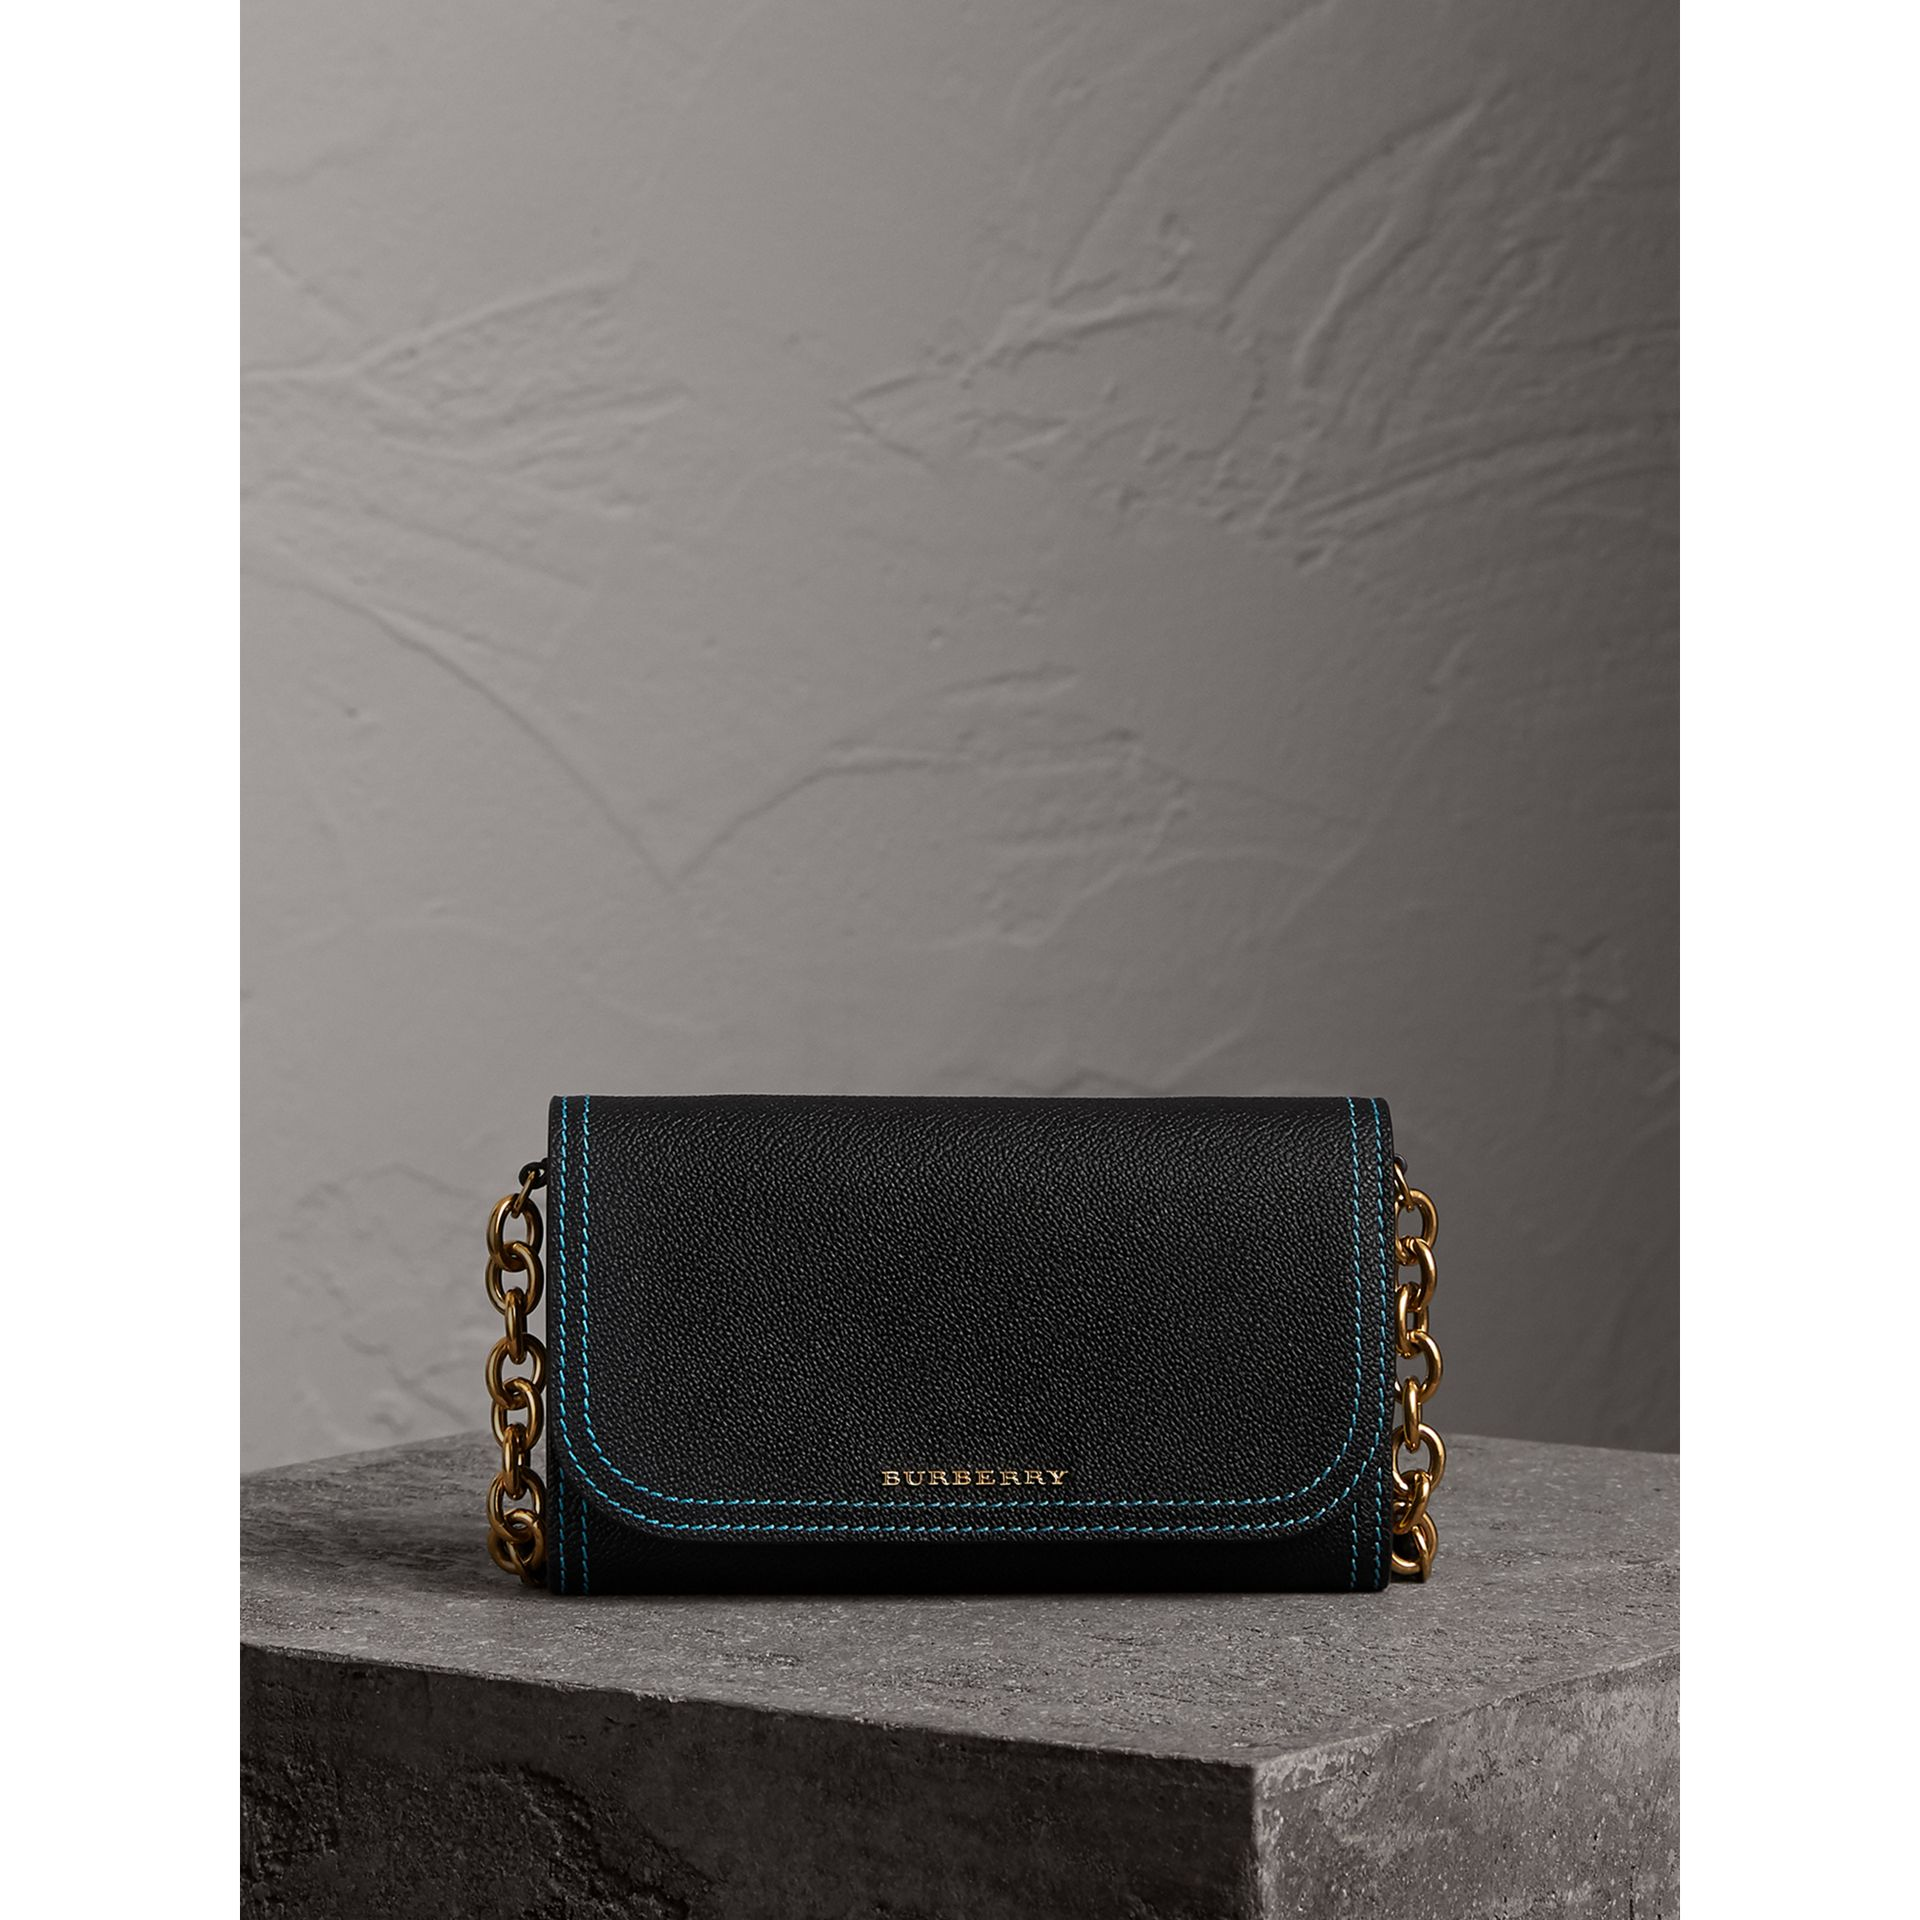 Topstitch Detail Leather Wallet with Detachable Strap in Black/multicolour - Women | Burberry Singapore - gallery image 5